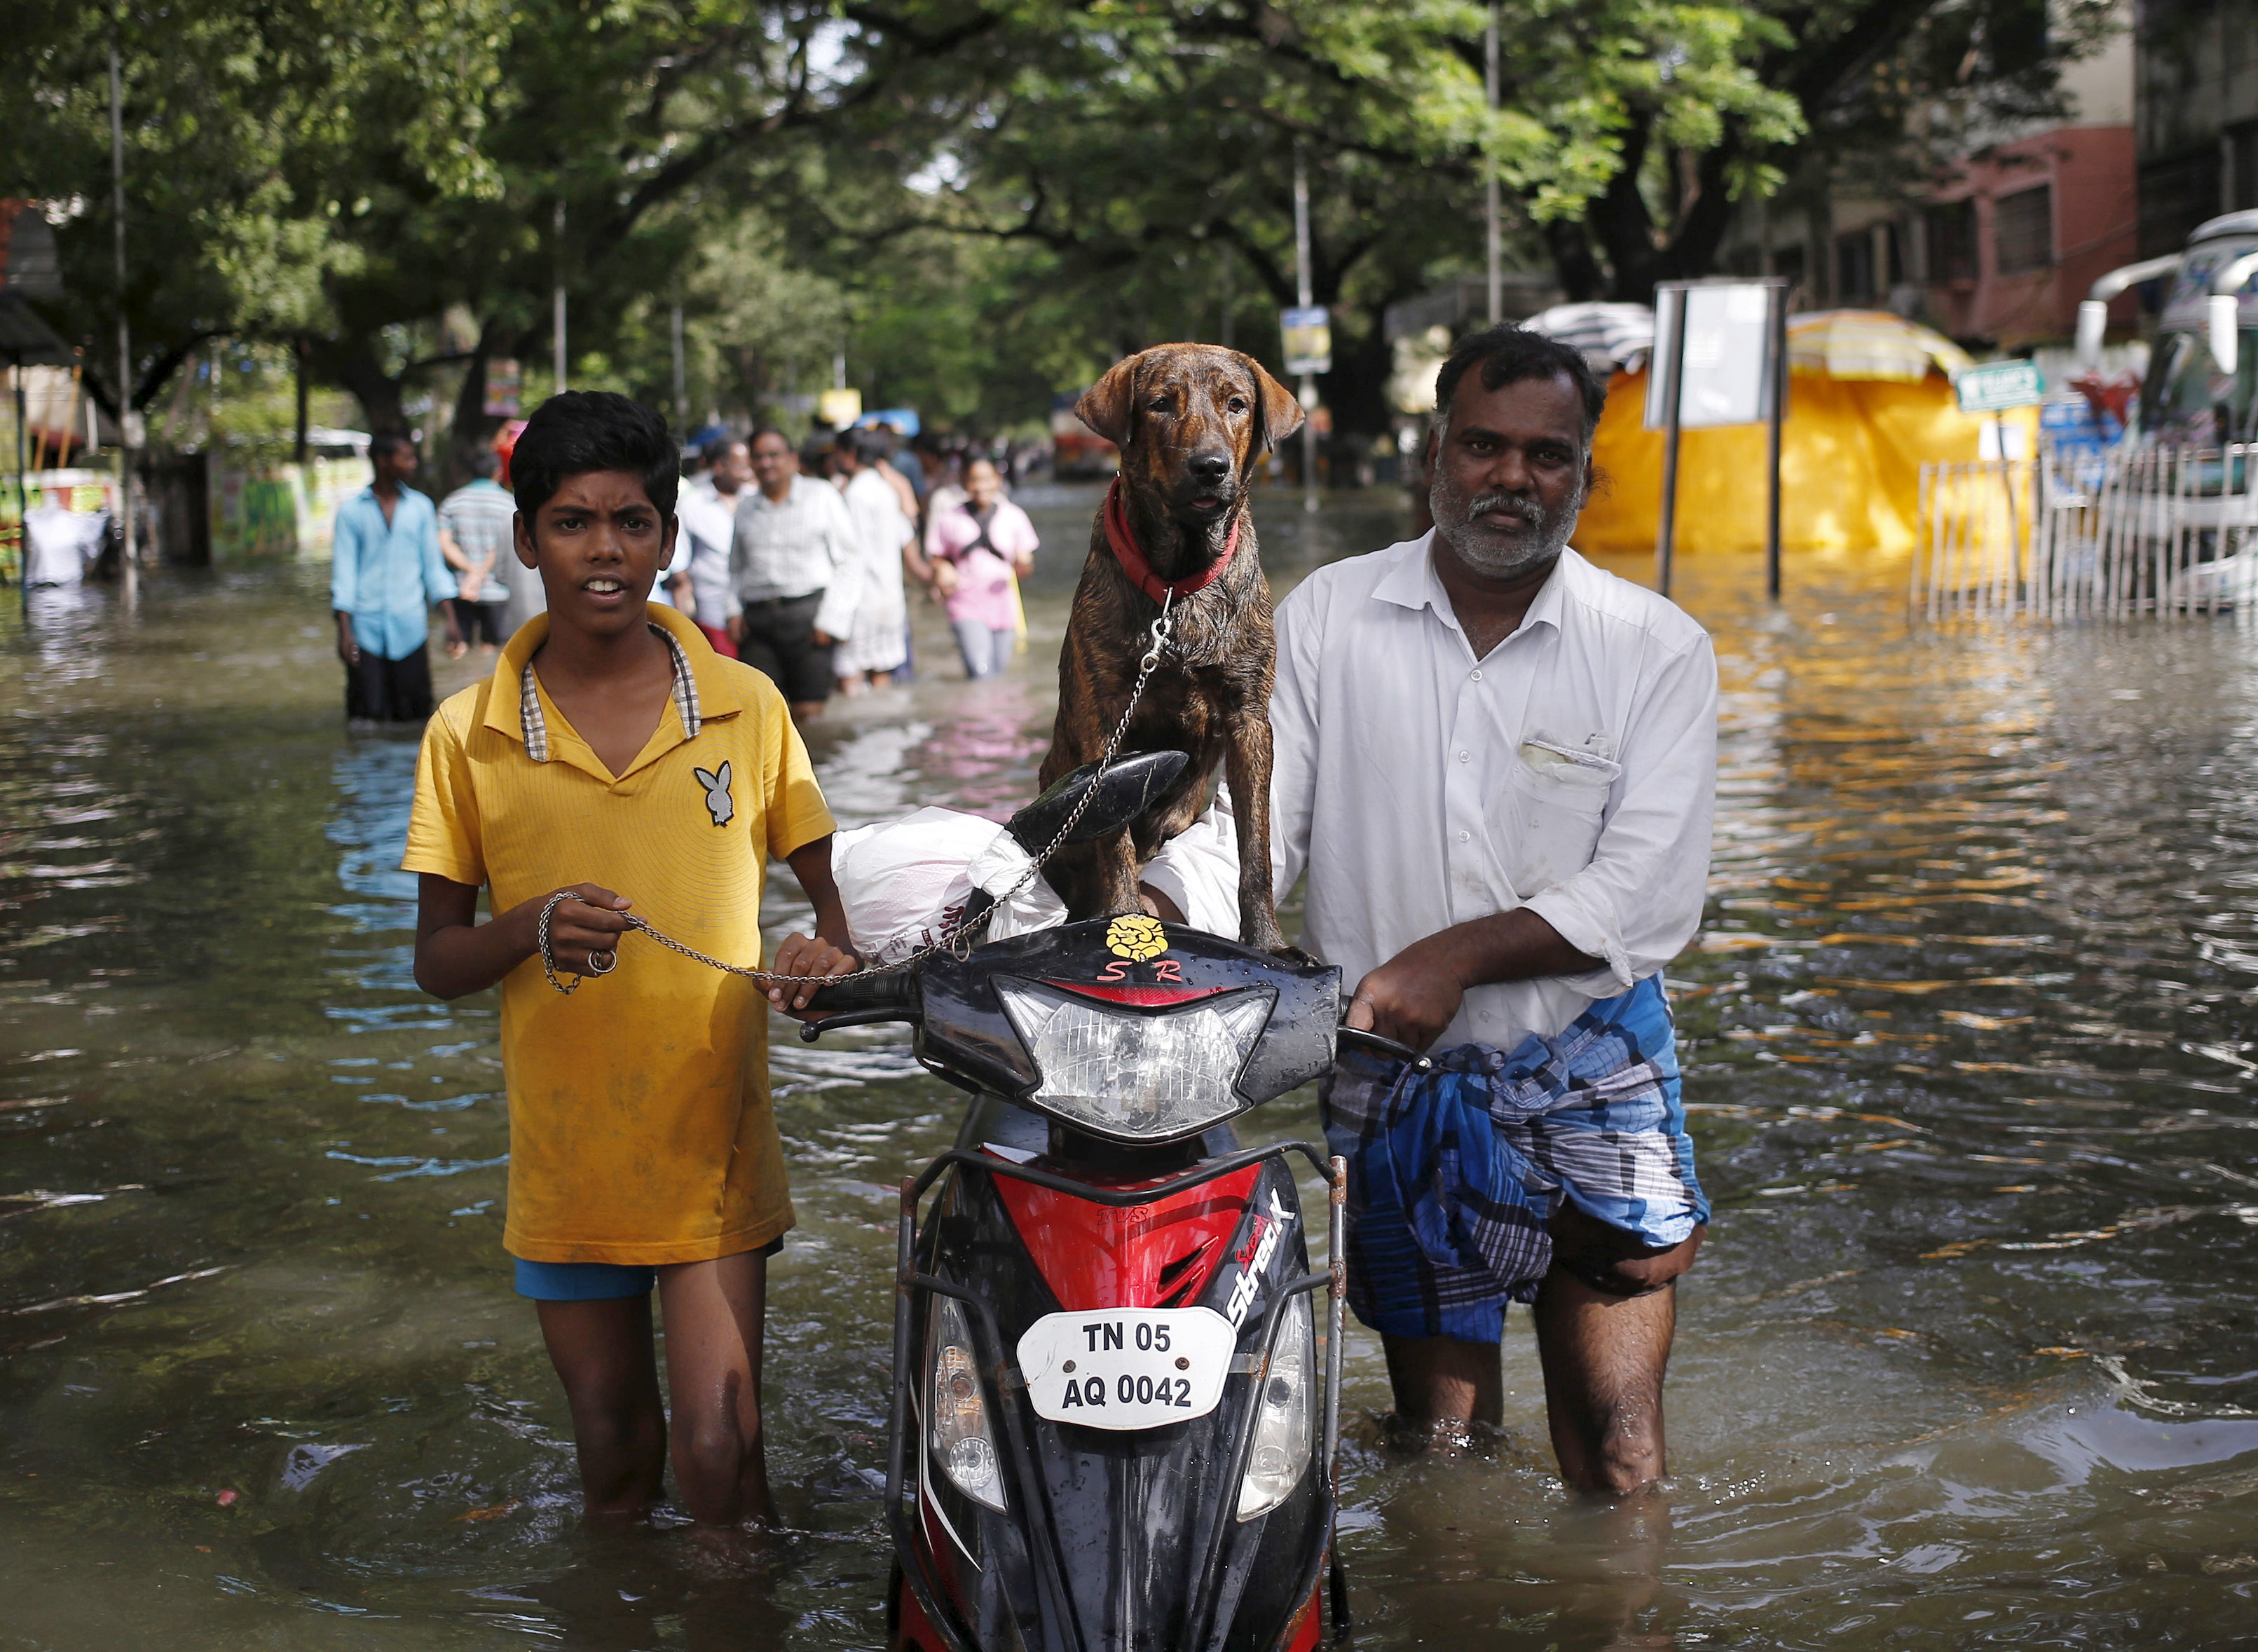 Residents along with a dog evacuate a locality as they wade through a flooded street in Chennai, India, December 3, 2015. REUTERS/Anindito Mukherjee - RTX1WZP6